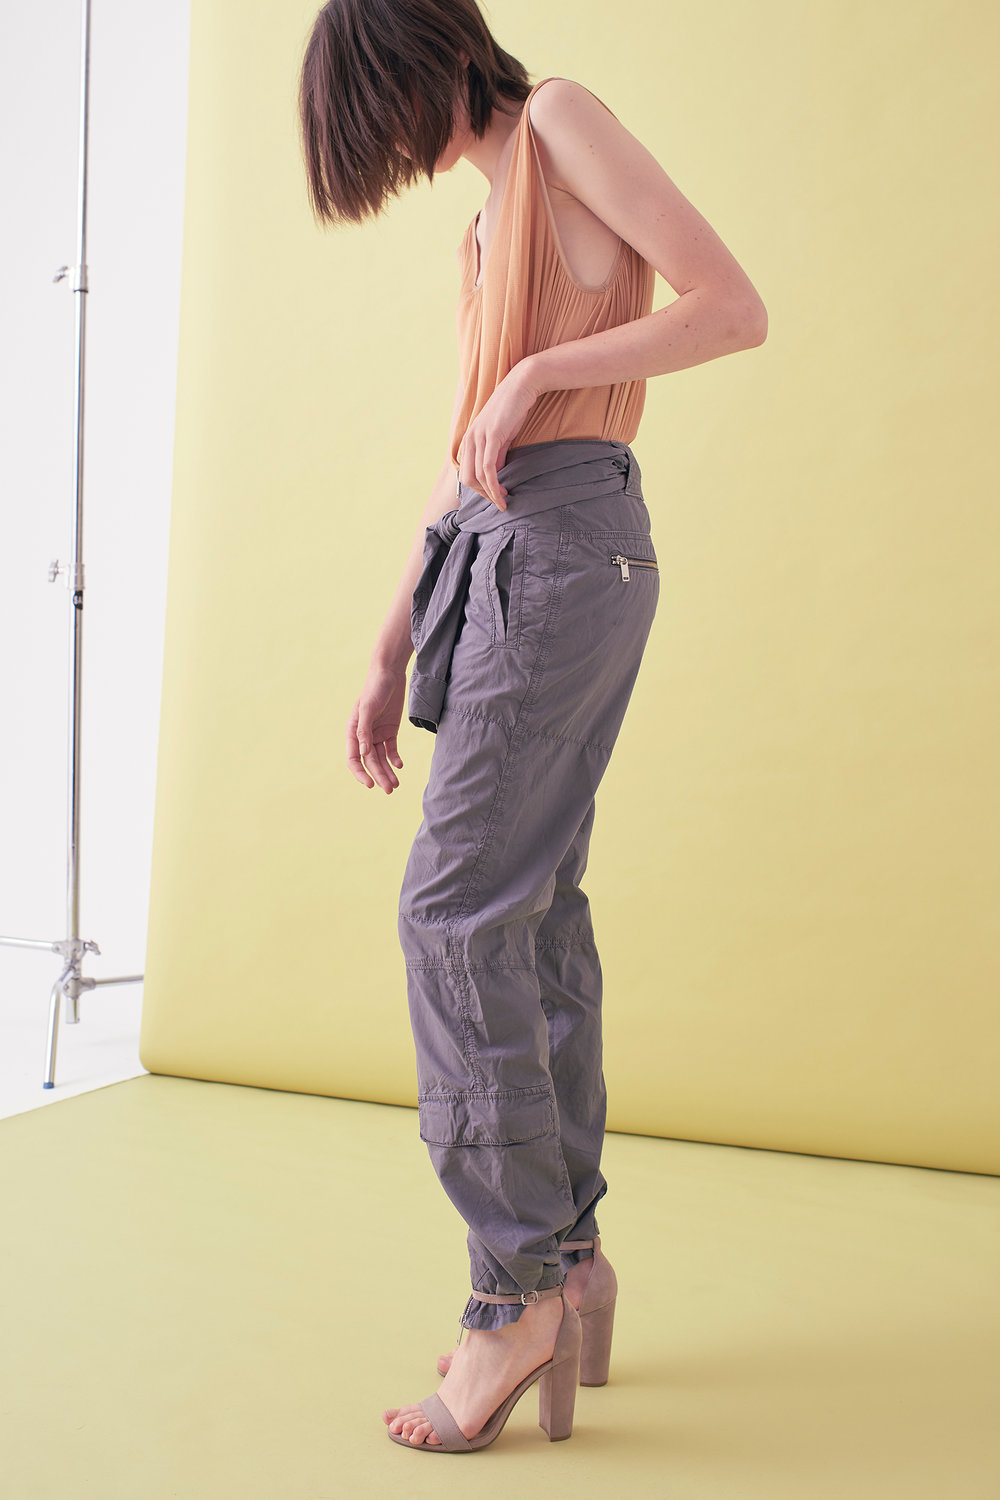 Sarah_Swann_SS17_38_Garment_Dyed_Rayon_Cotton_Utility_Trouser_Pewter_S.jpg